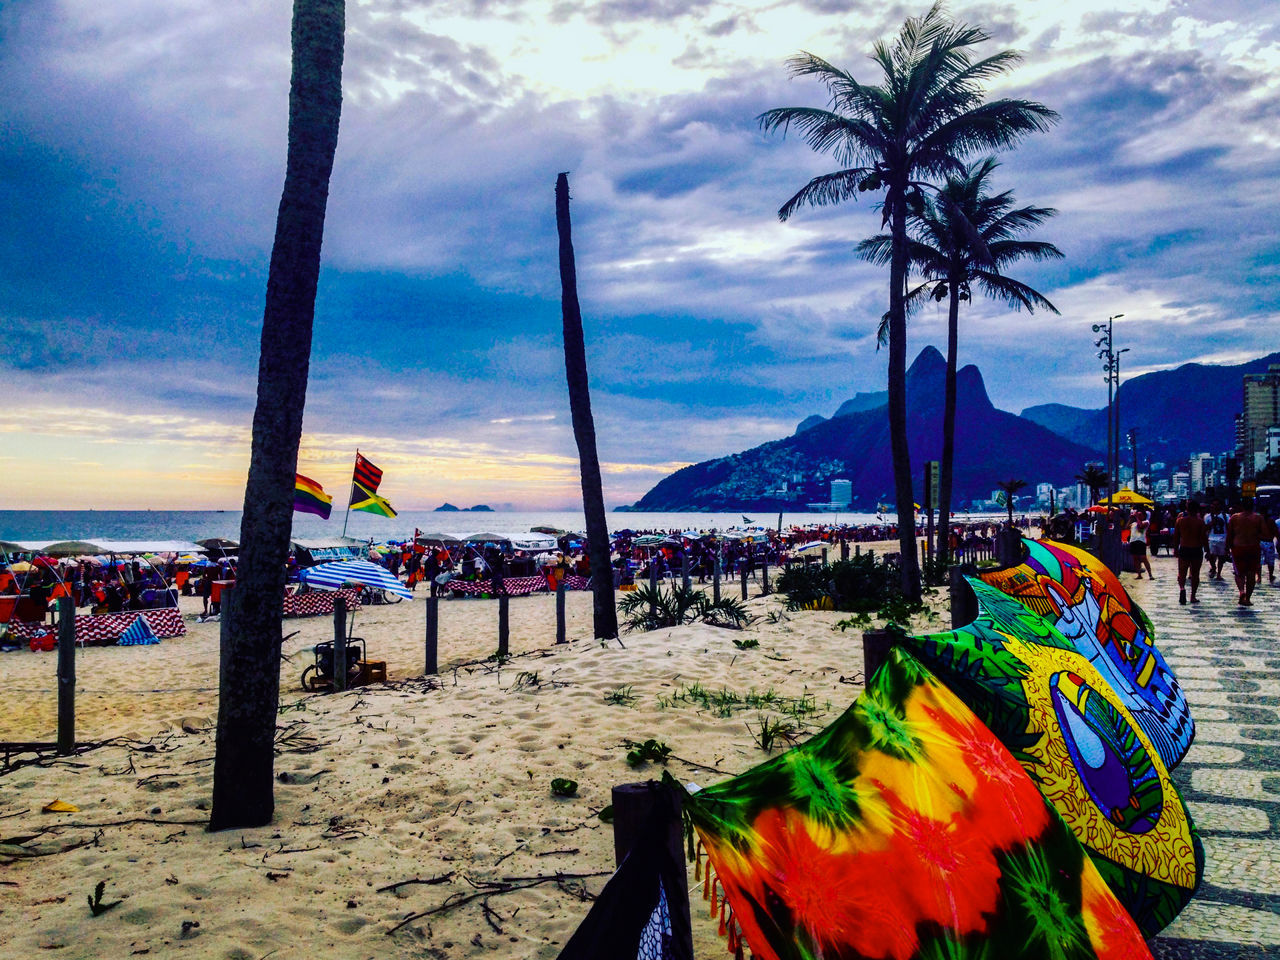 beach, sky, cloud - sky, sea, multi colored, sand, nature, outdoors, large group of people, water, real people, day, scenics, beauty in nature, tree, people